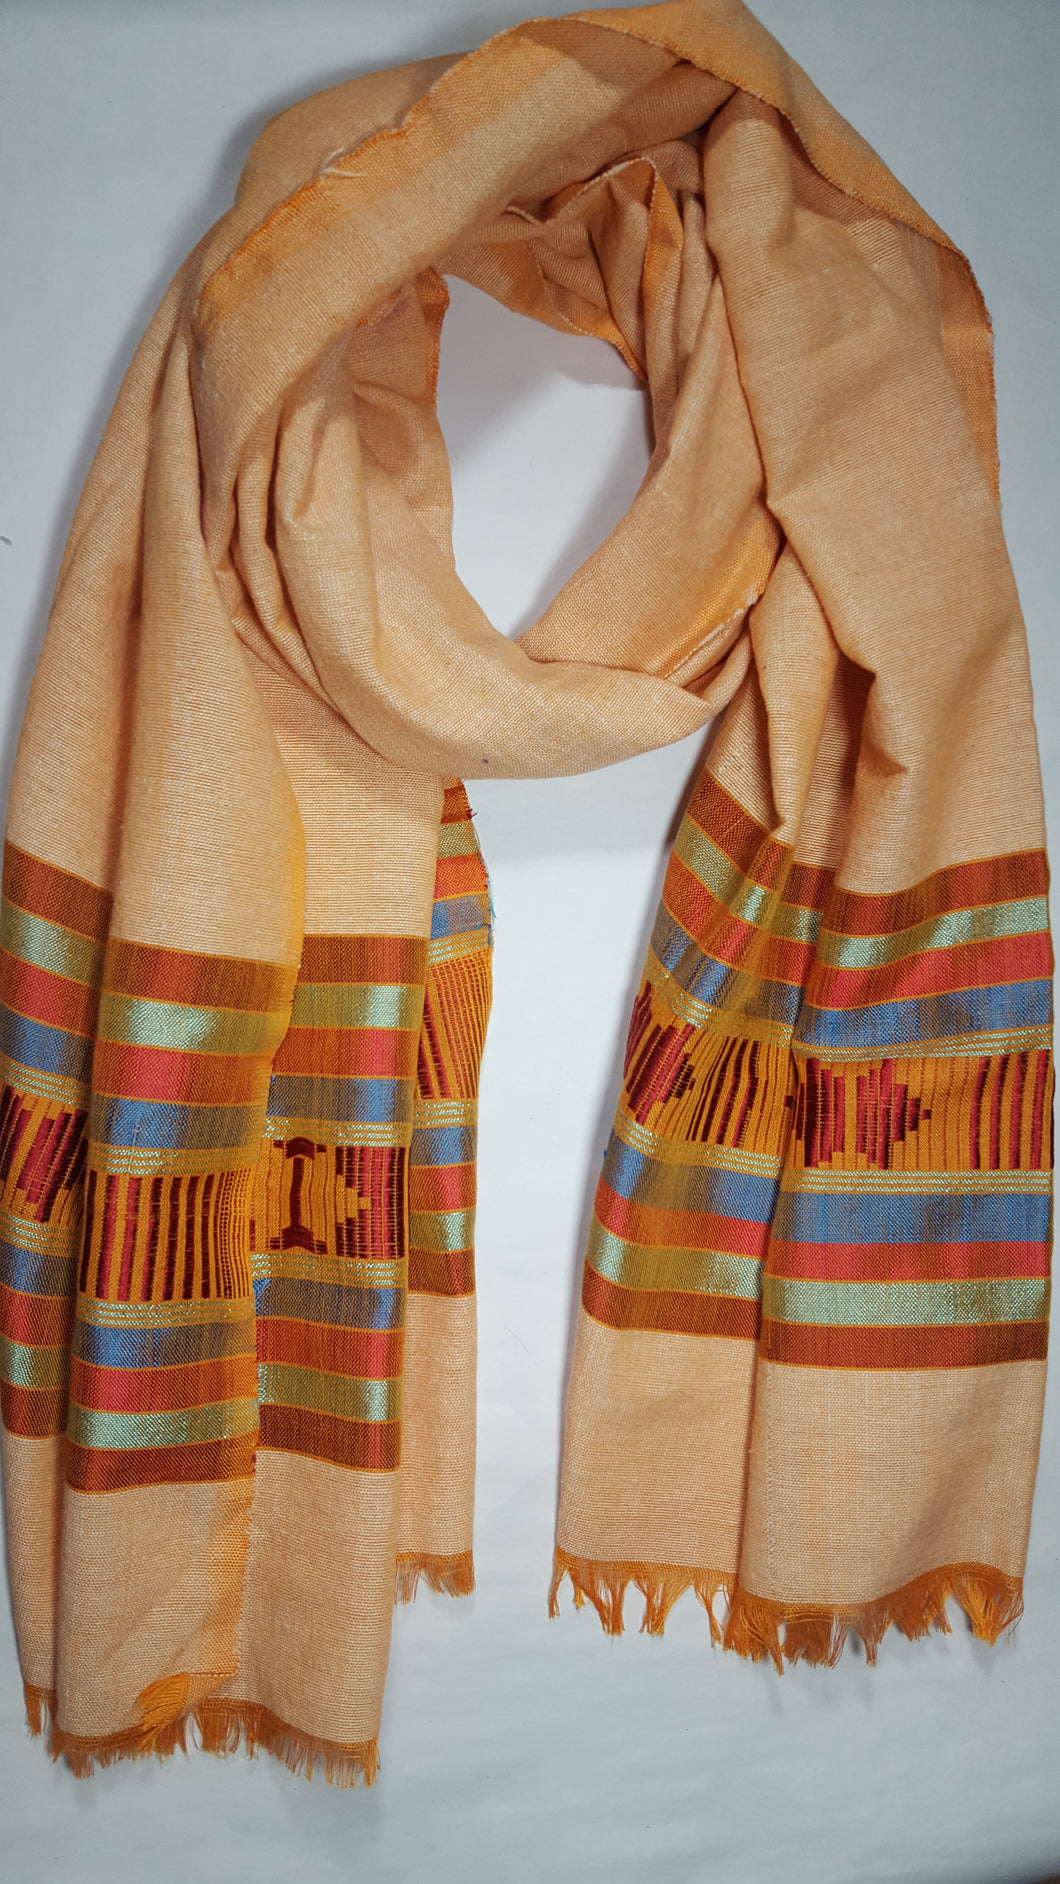 Handwoven Cotton Scarf - Shades of Peach